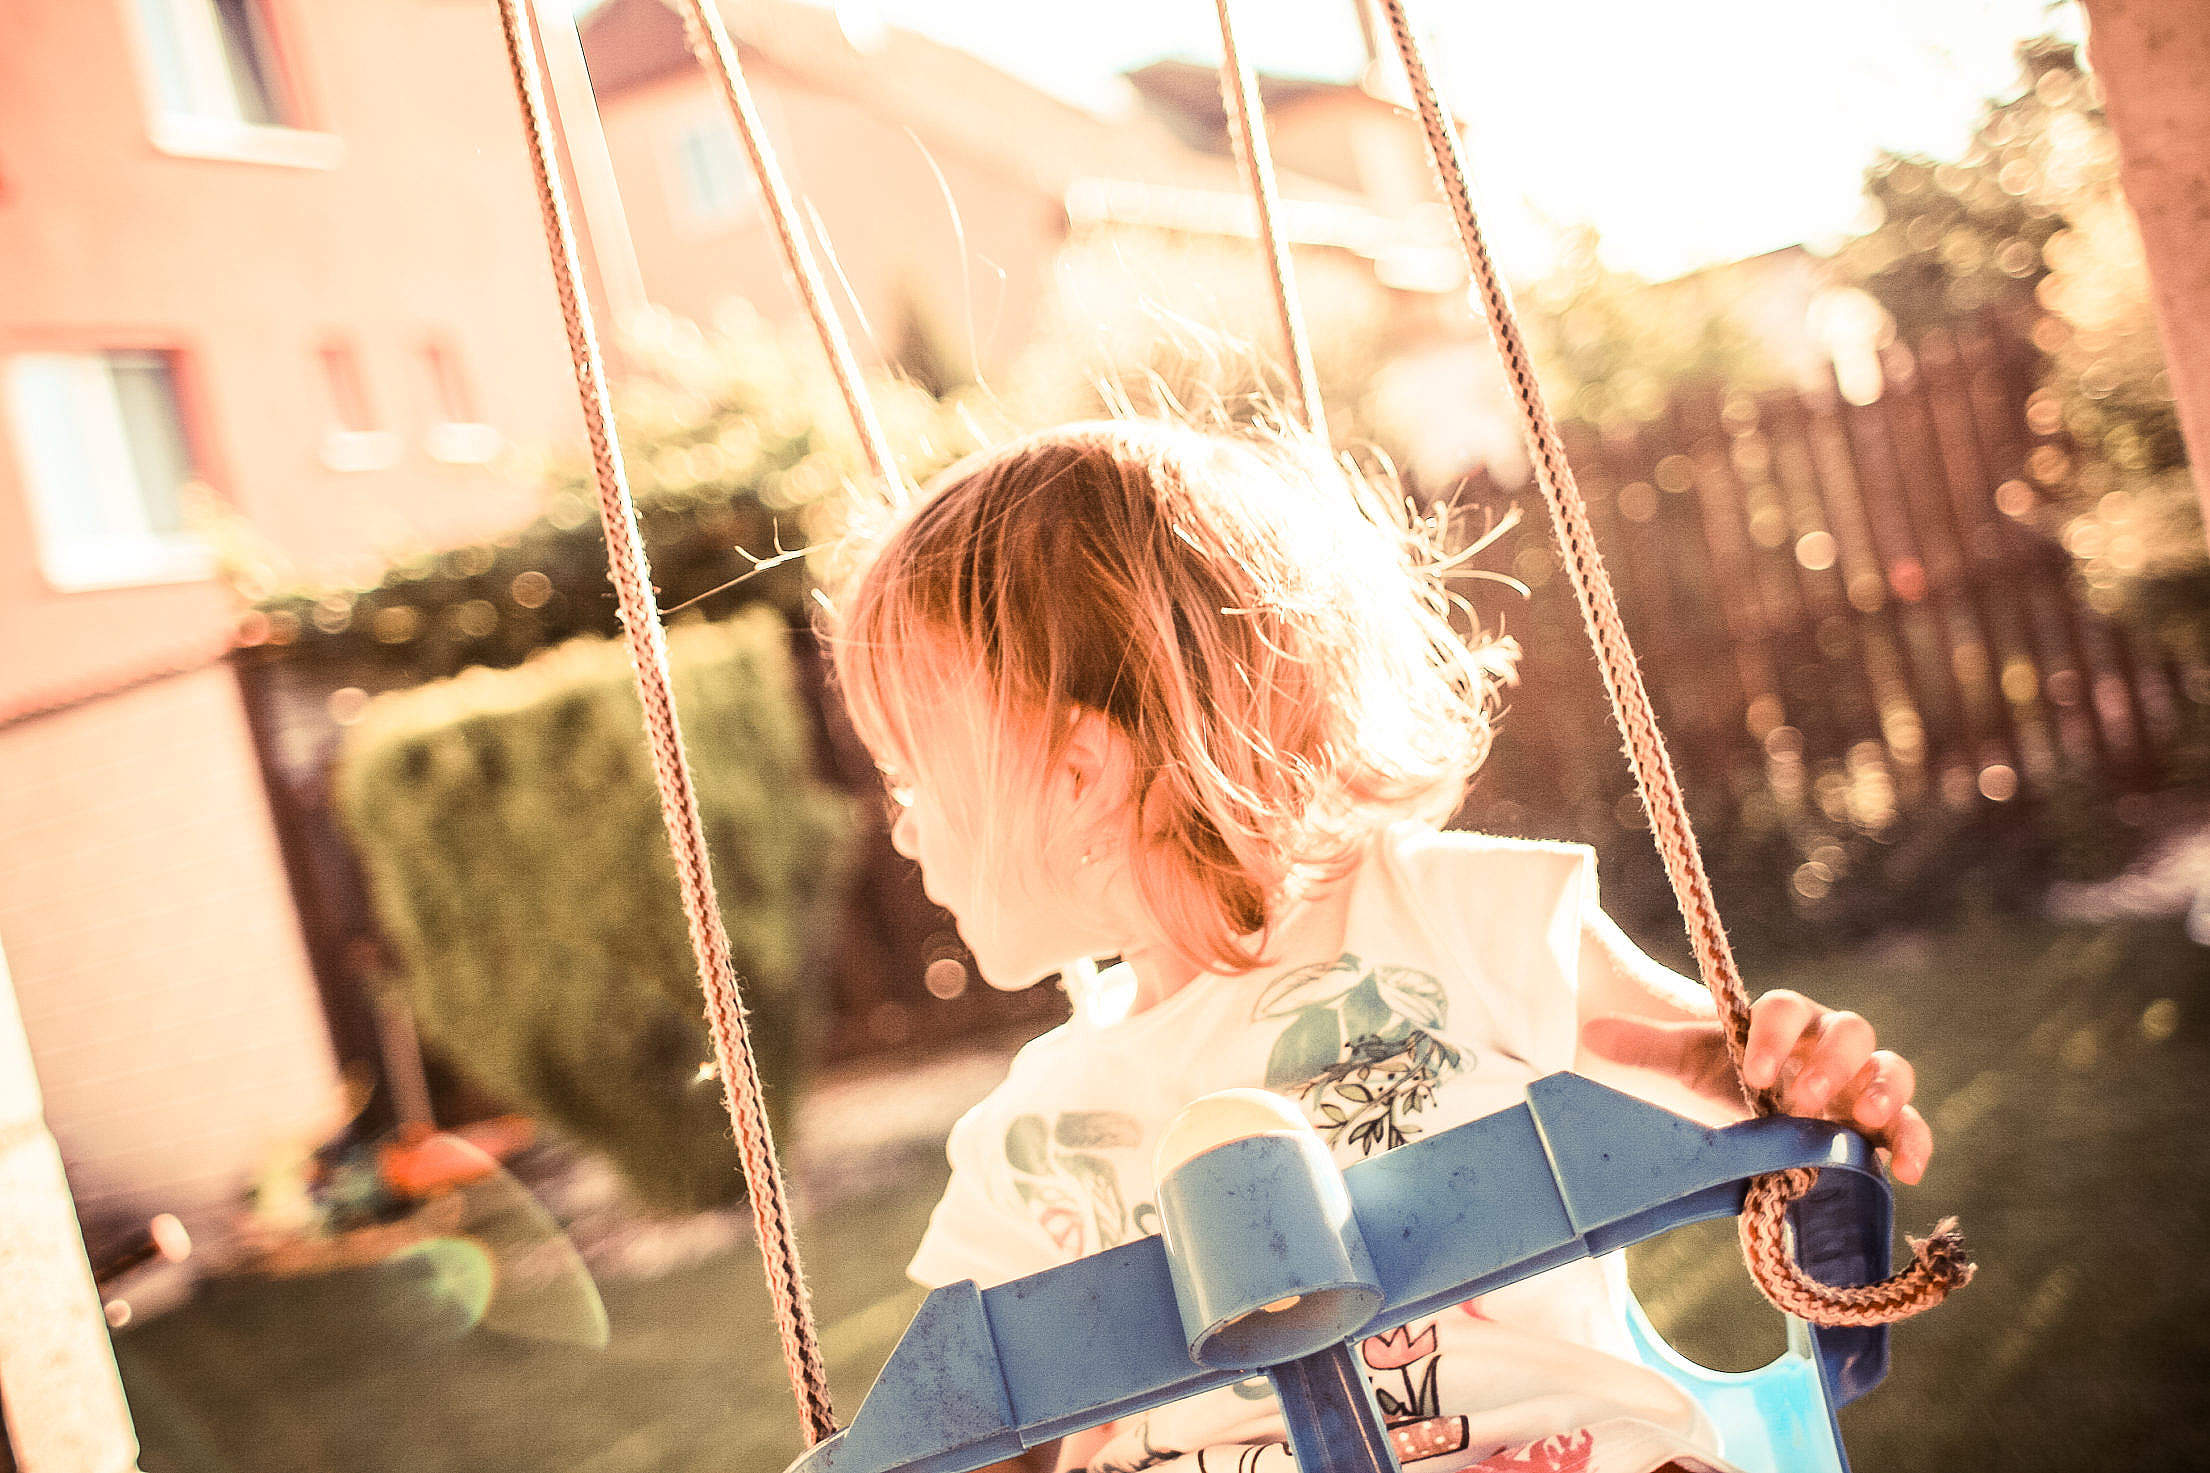 Little Girl on a Swing Free Stock Photo